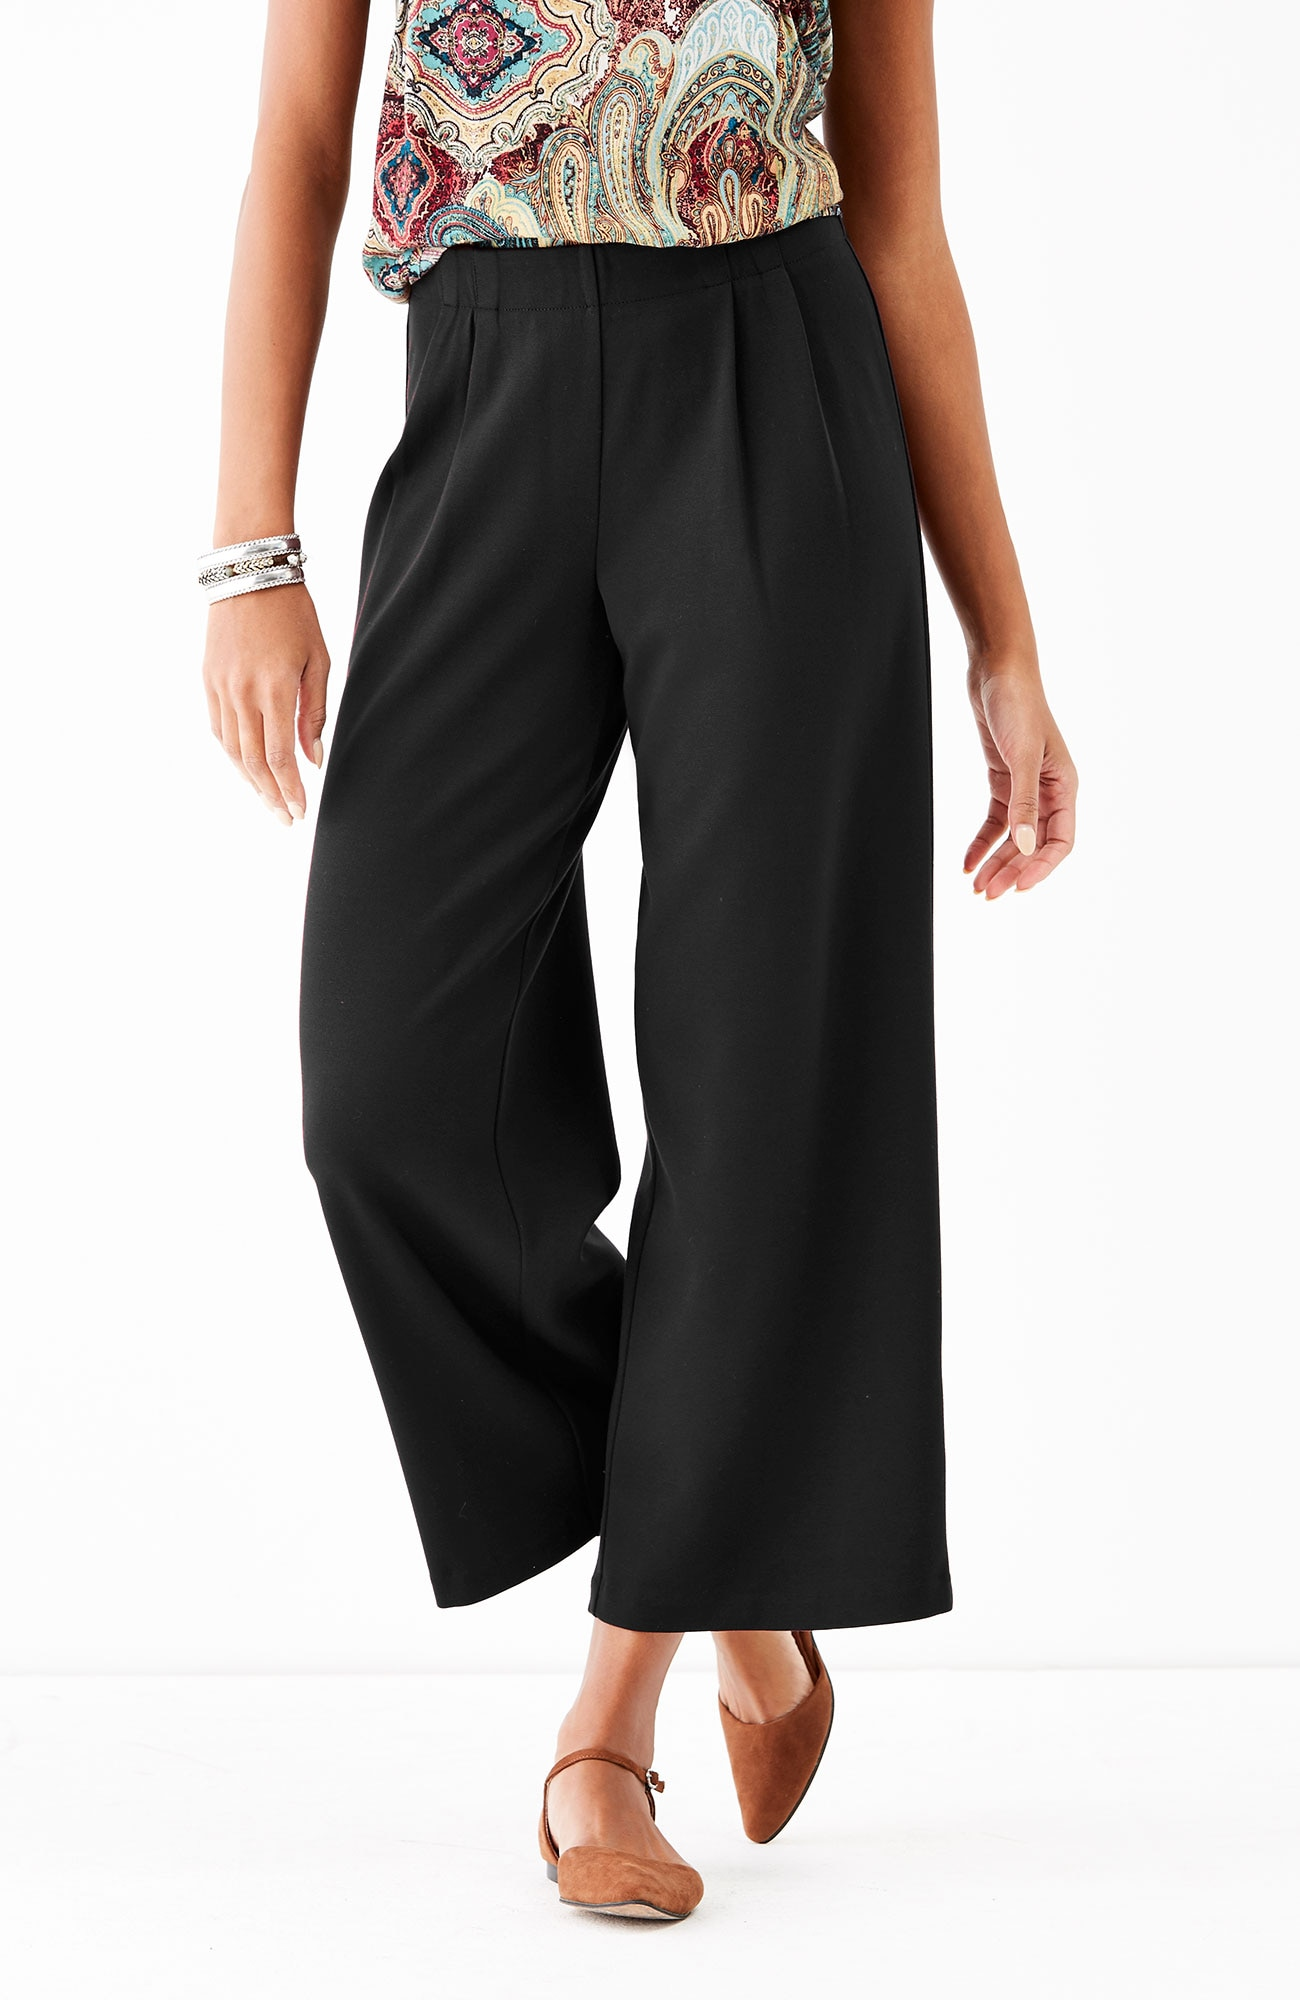 ponte knit pleated full-leg crops